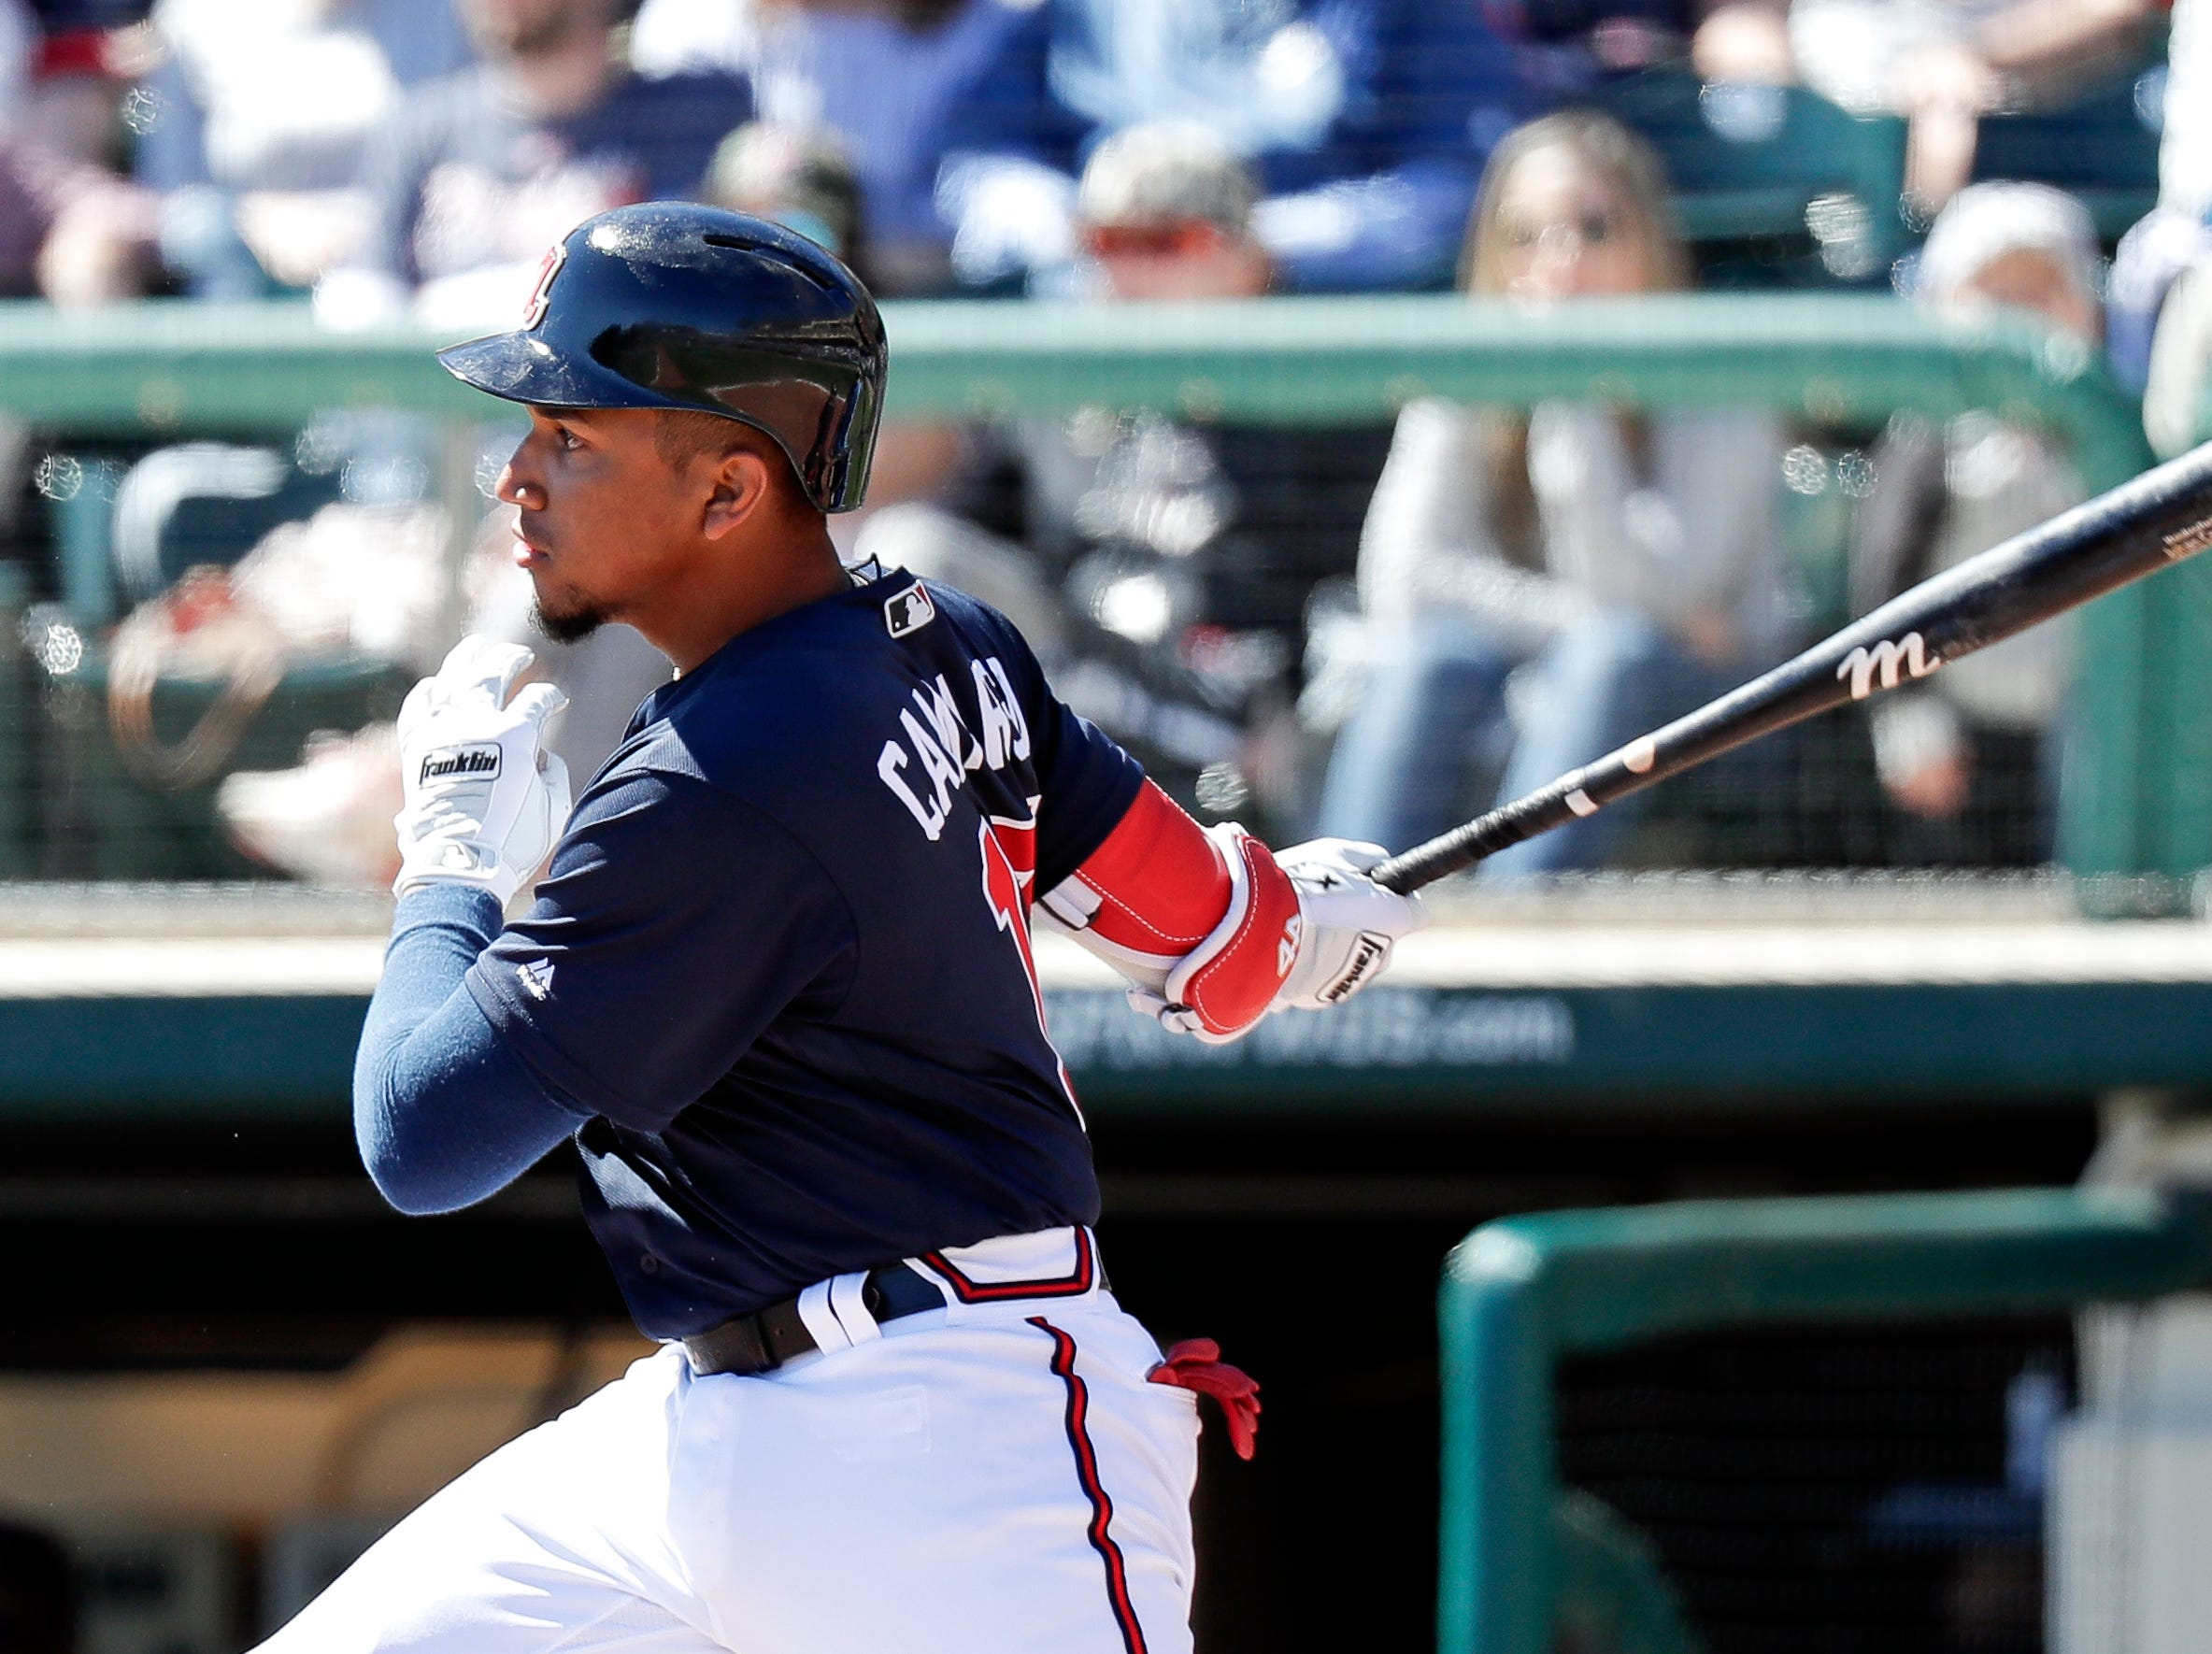 Atlanta Braves' Johan Camargo hits a single against the Detroit Tigers in the third inning of a spring baseball exhibition game, Wednesday, March 6, 2019, in Kissimmee, Fla.